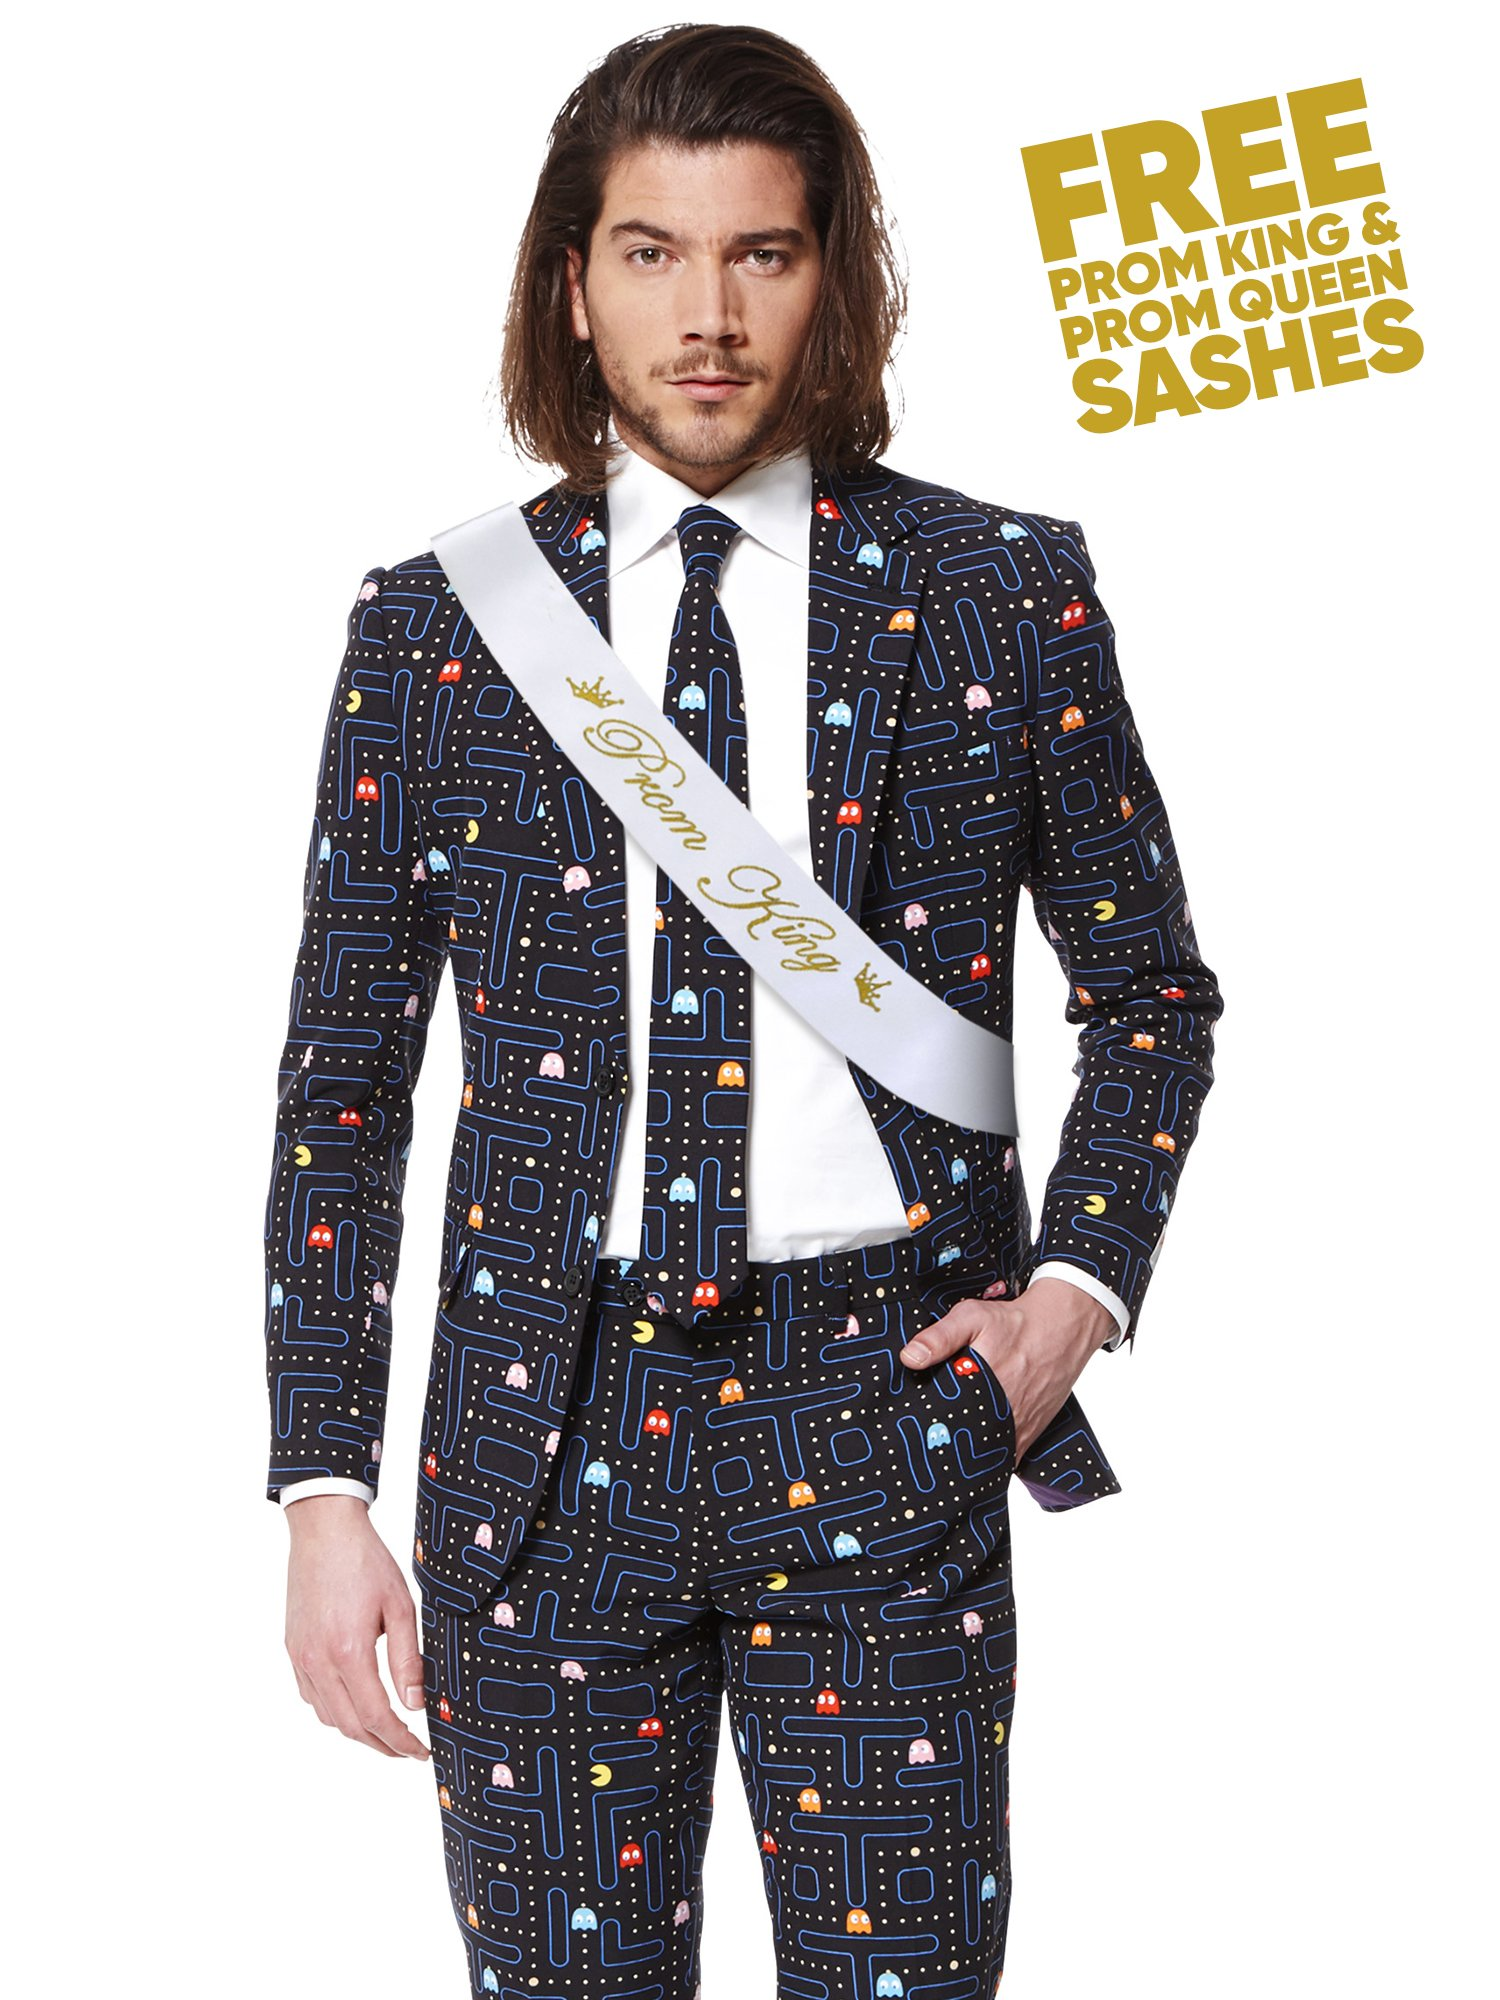 Opposuits Fancy Colored Suit For Men Now With Free Prom King and Prom Queen Sash